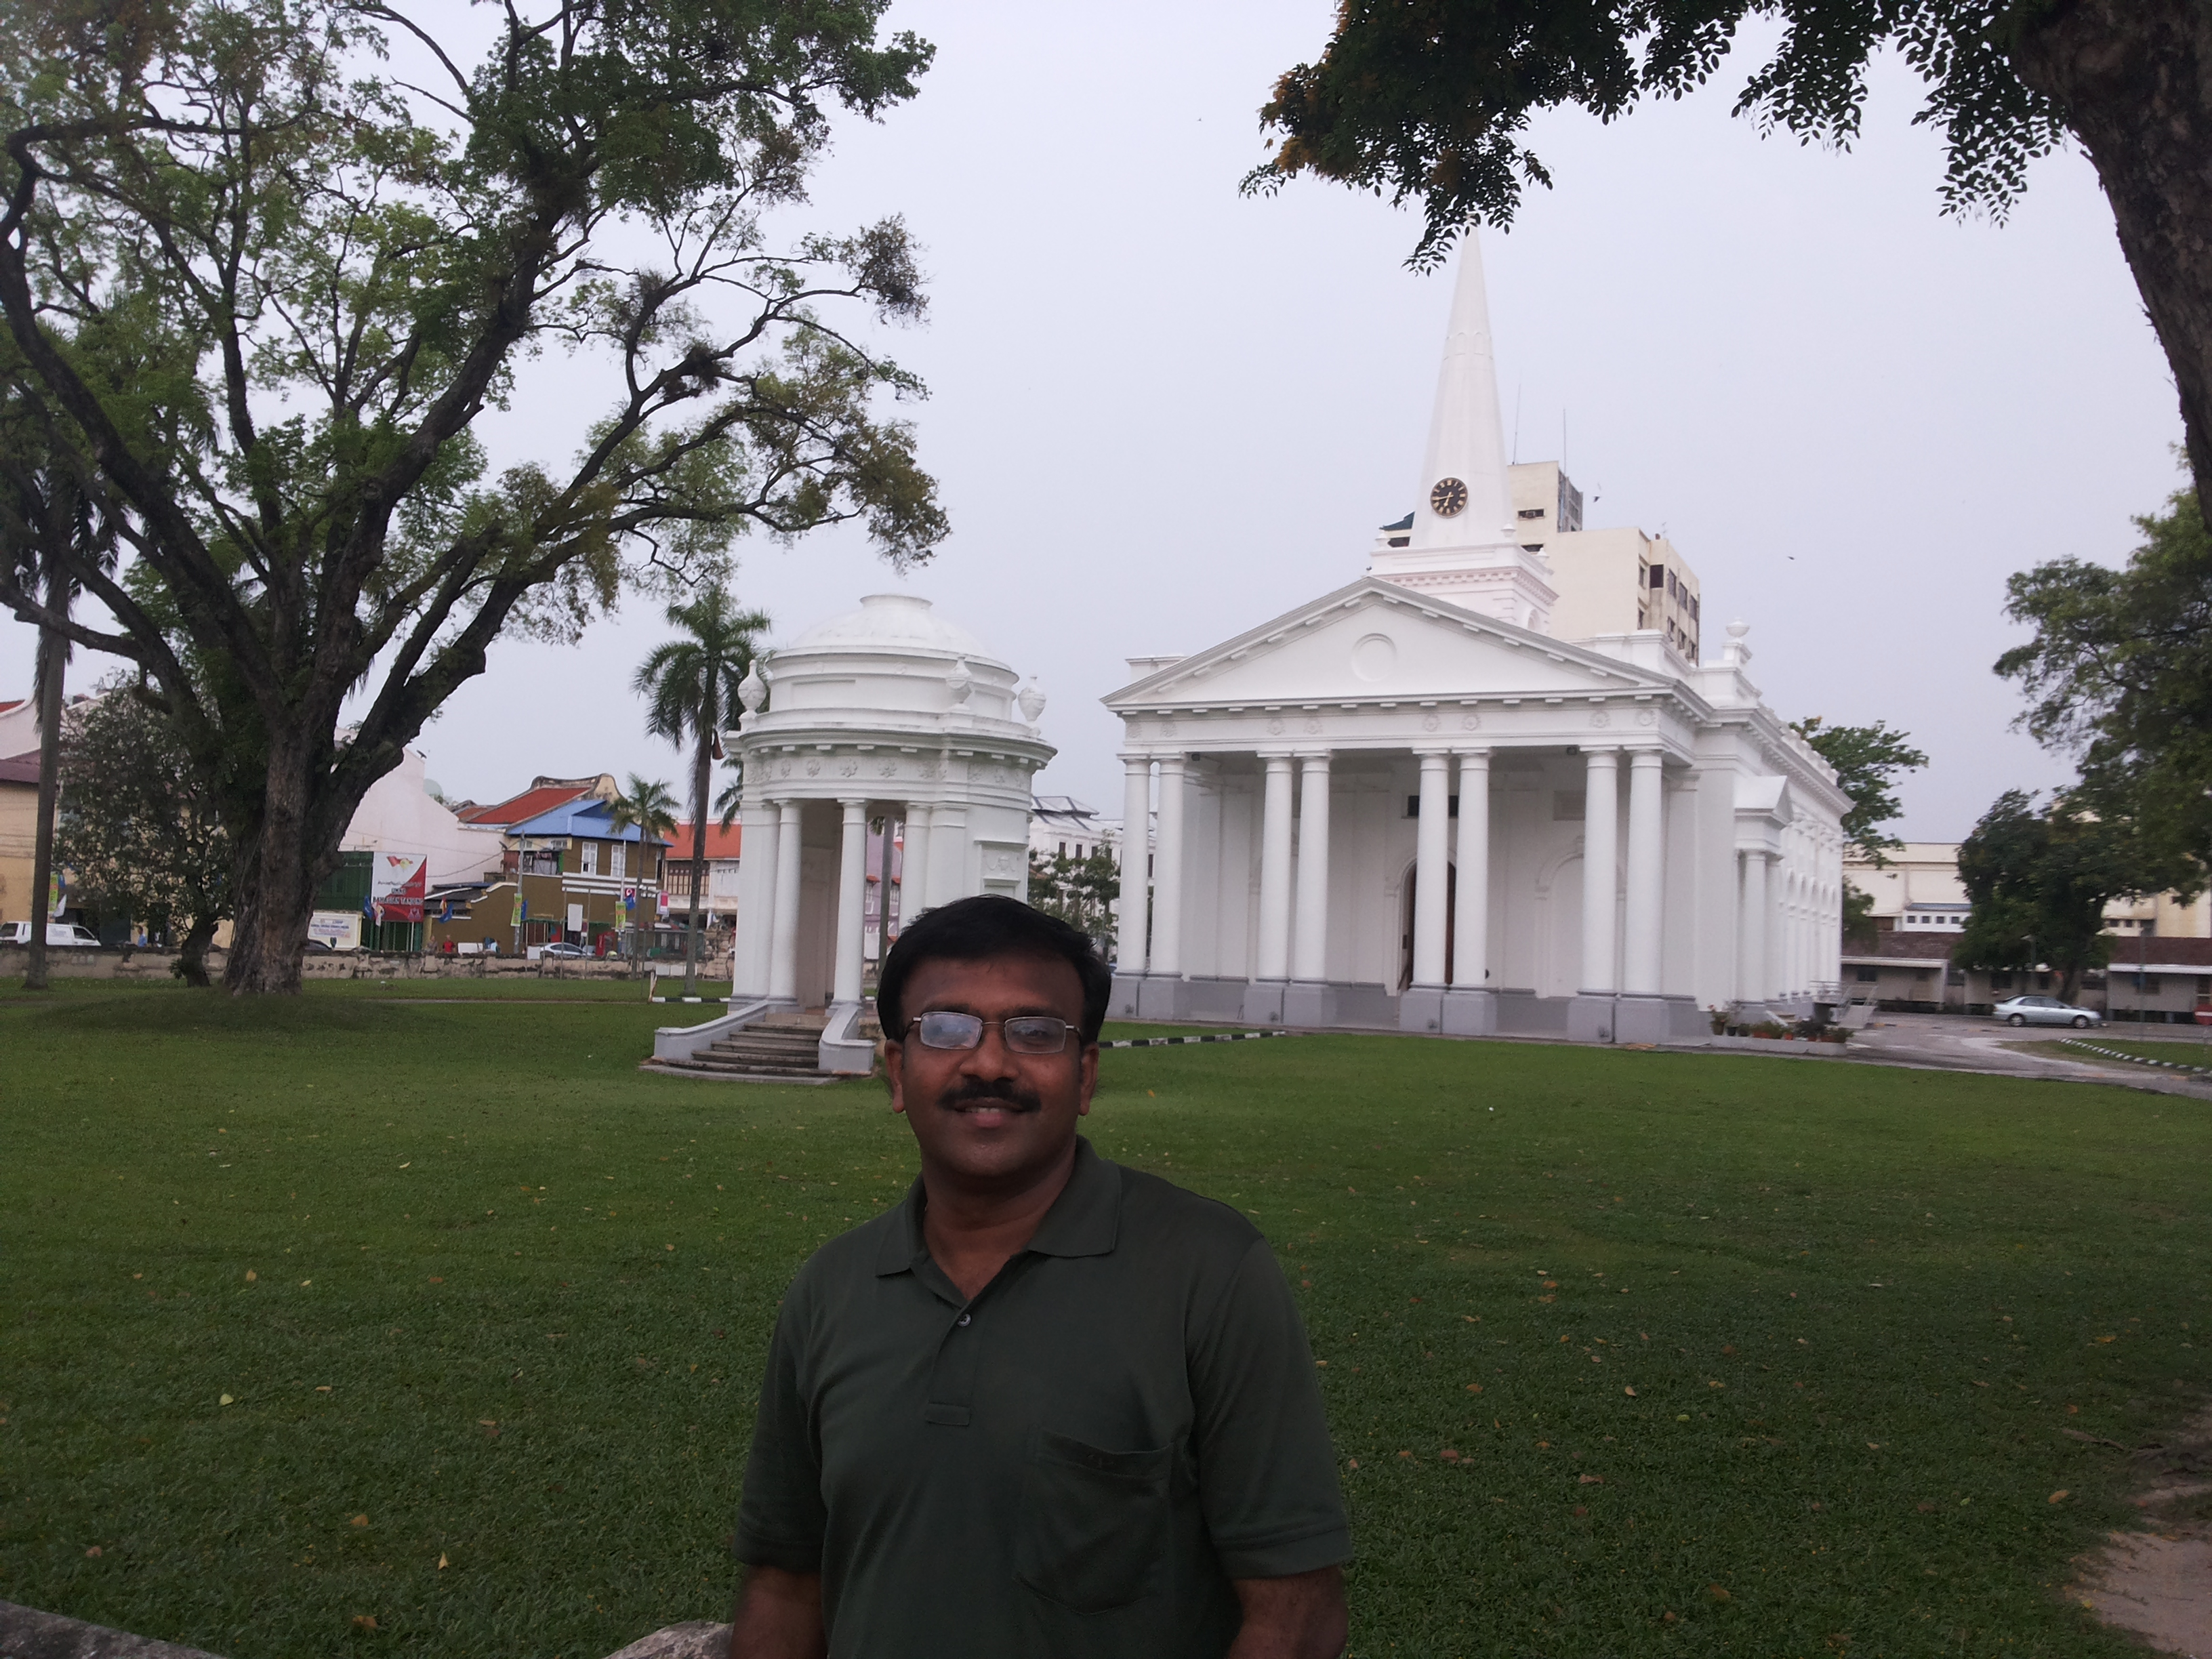 St. George's Church, George Town, Penang Malaysia Senthil Durai